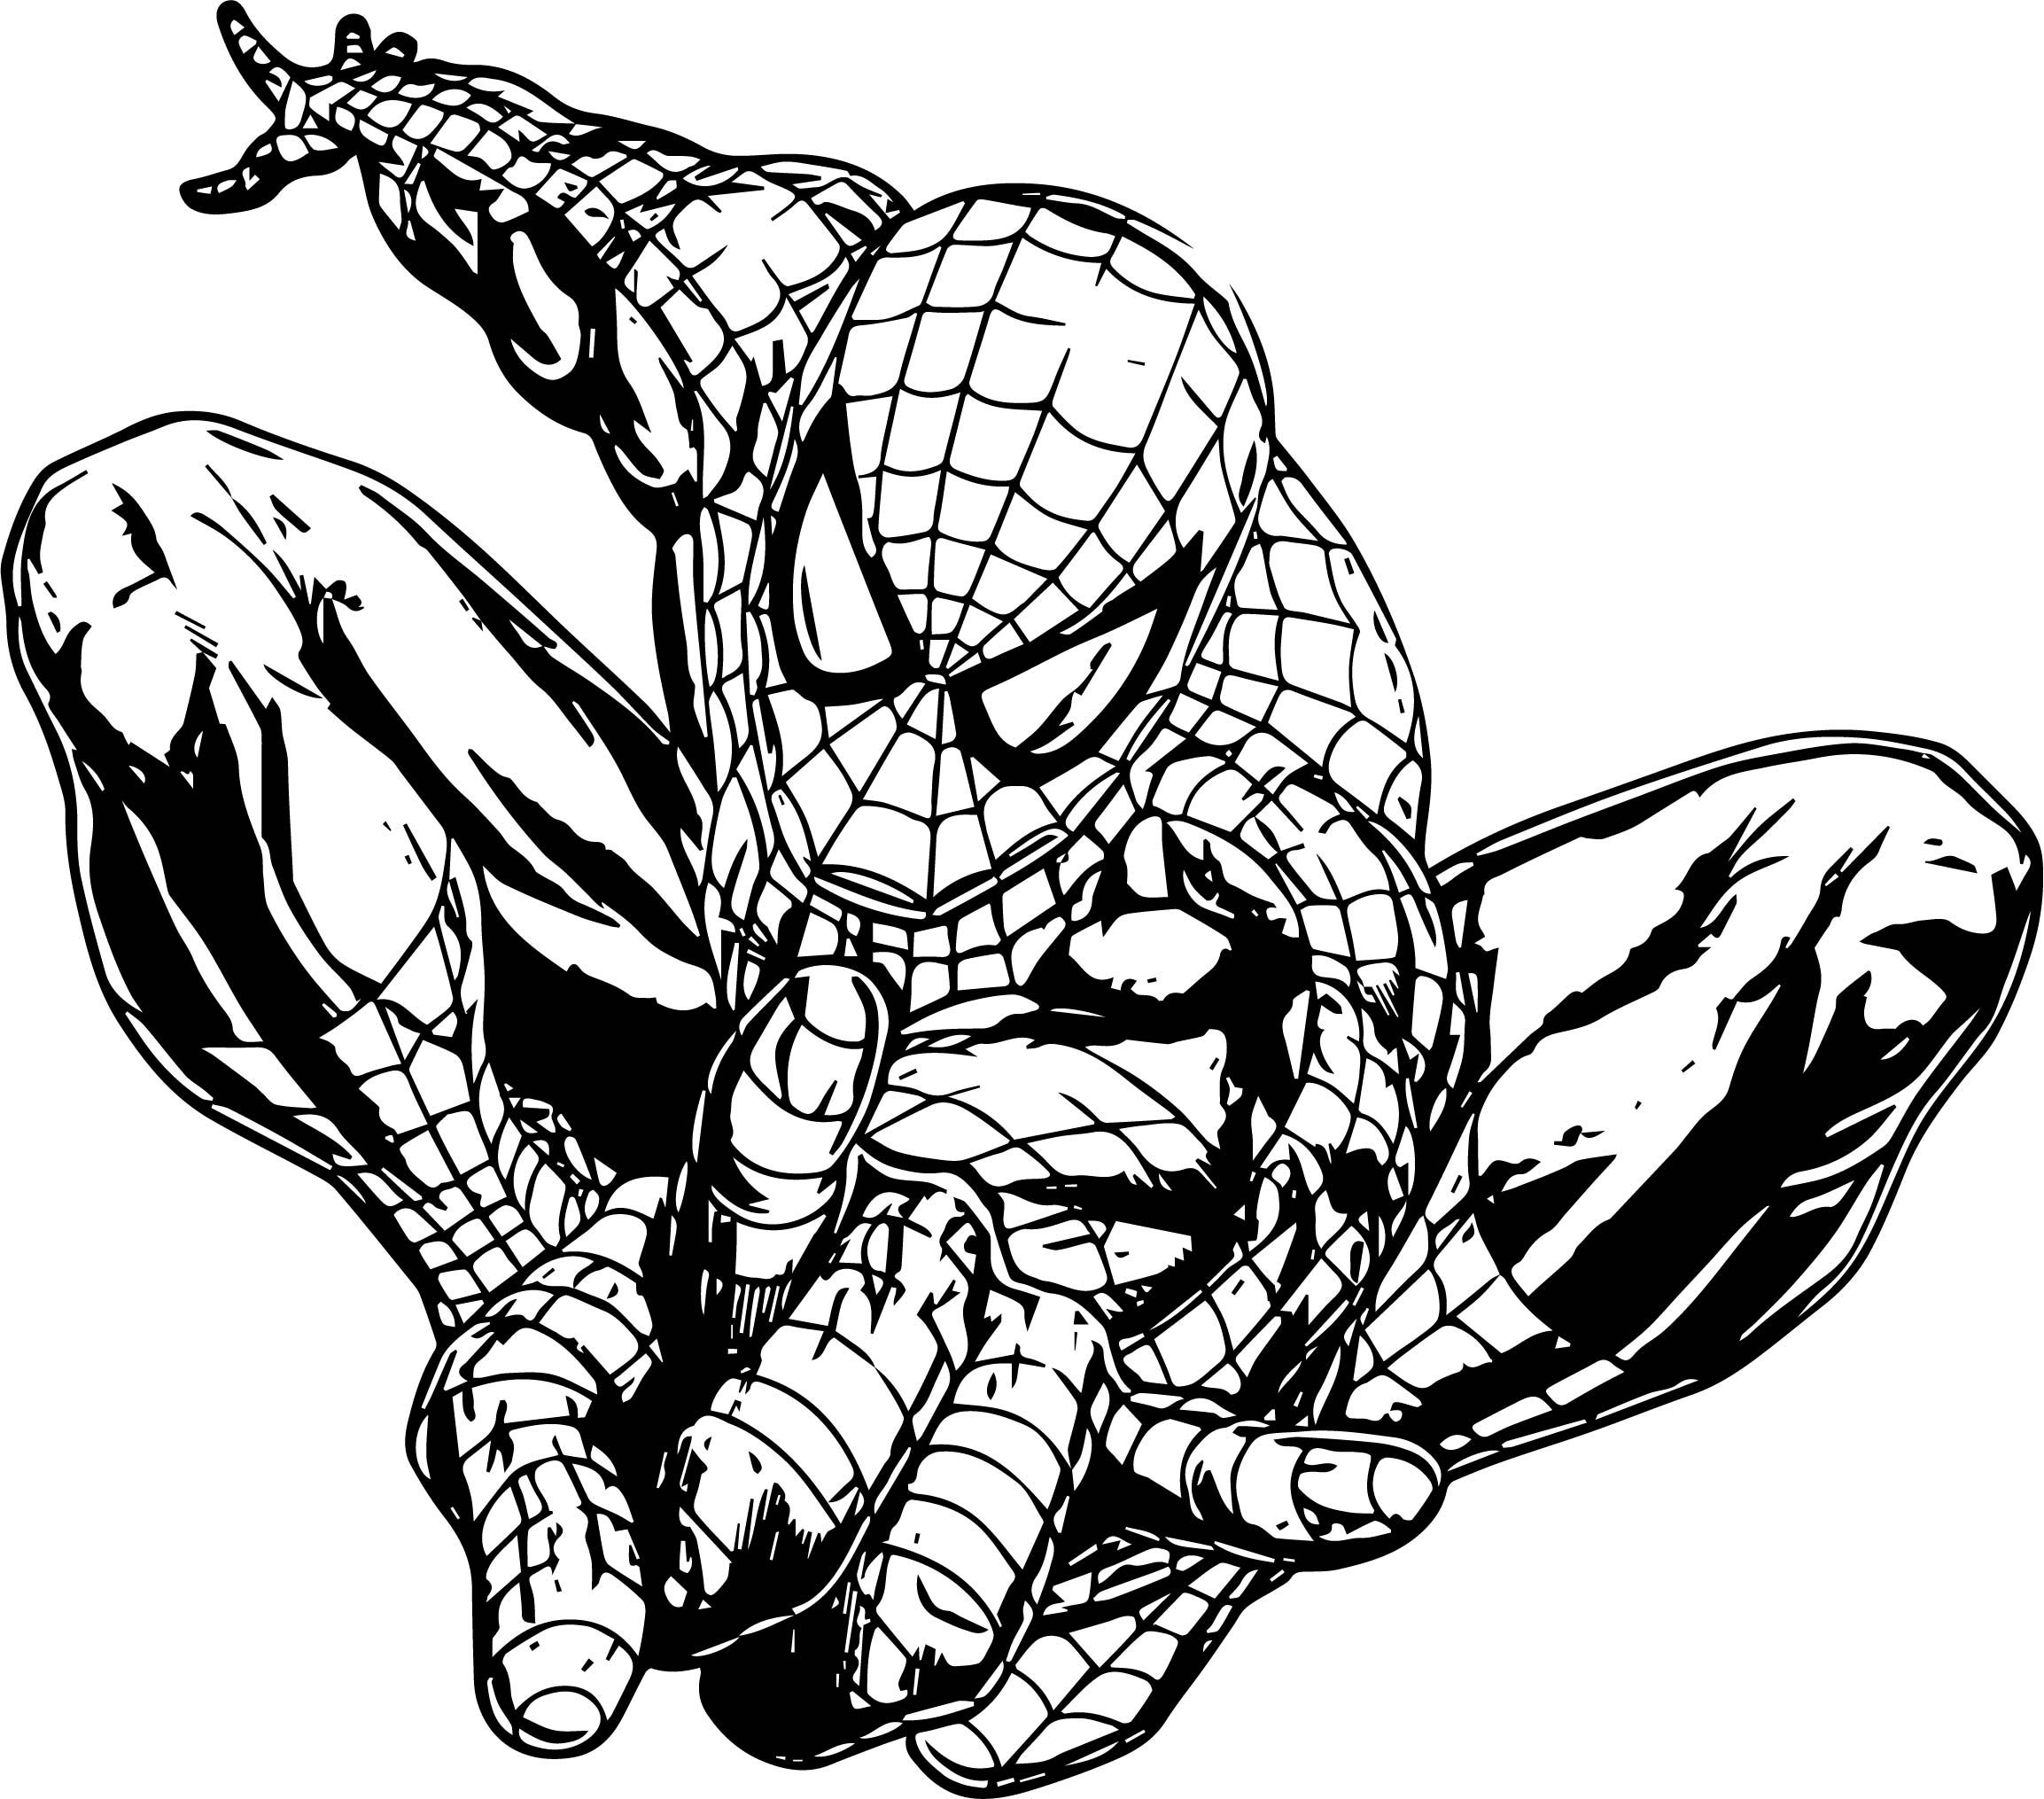 spiderman web coloring pages printable spider web coloring pages for kids cool2bkids web spiderman pages coloring